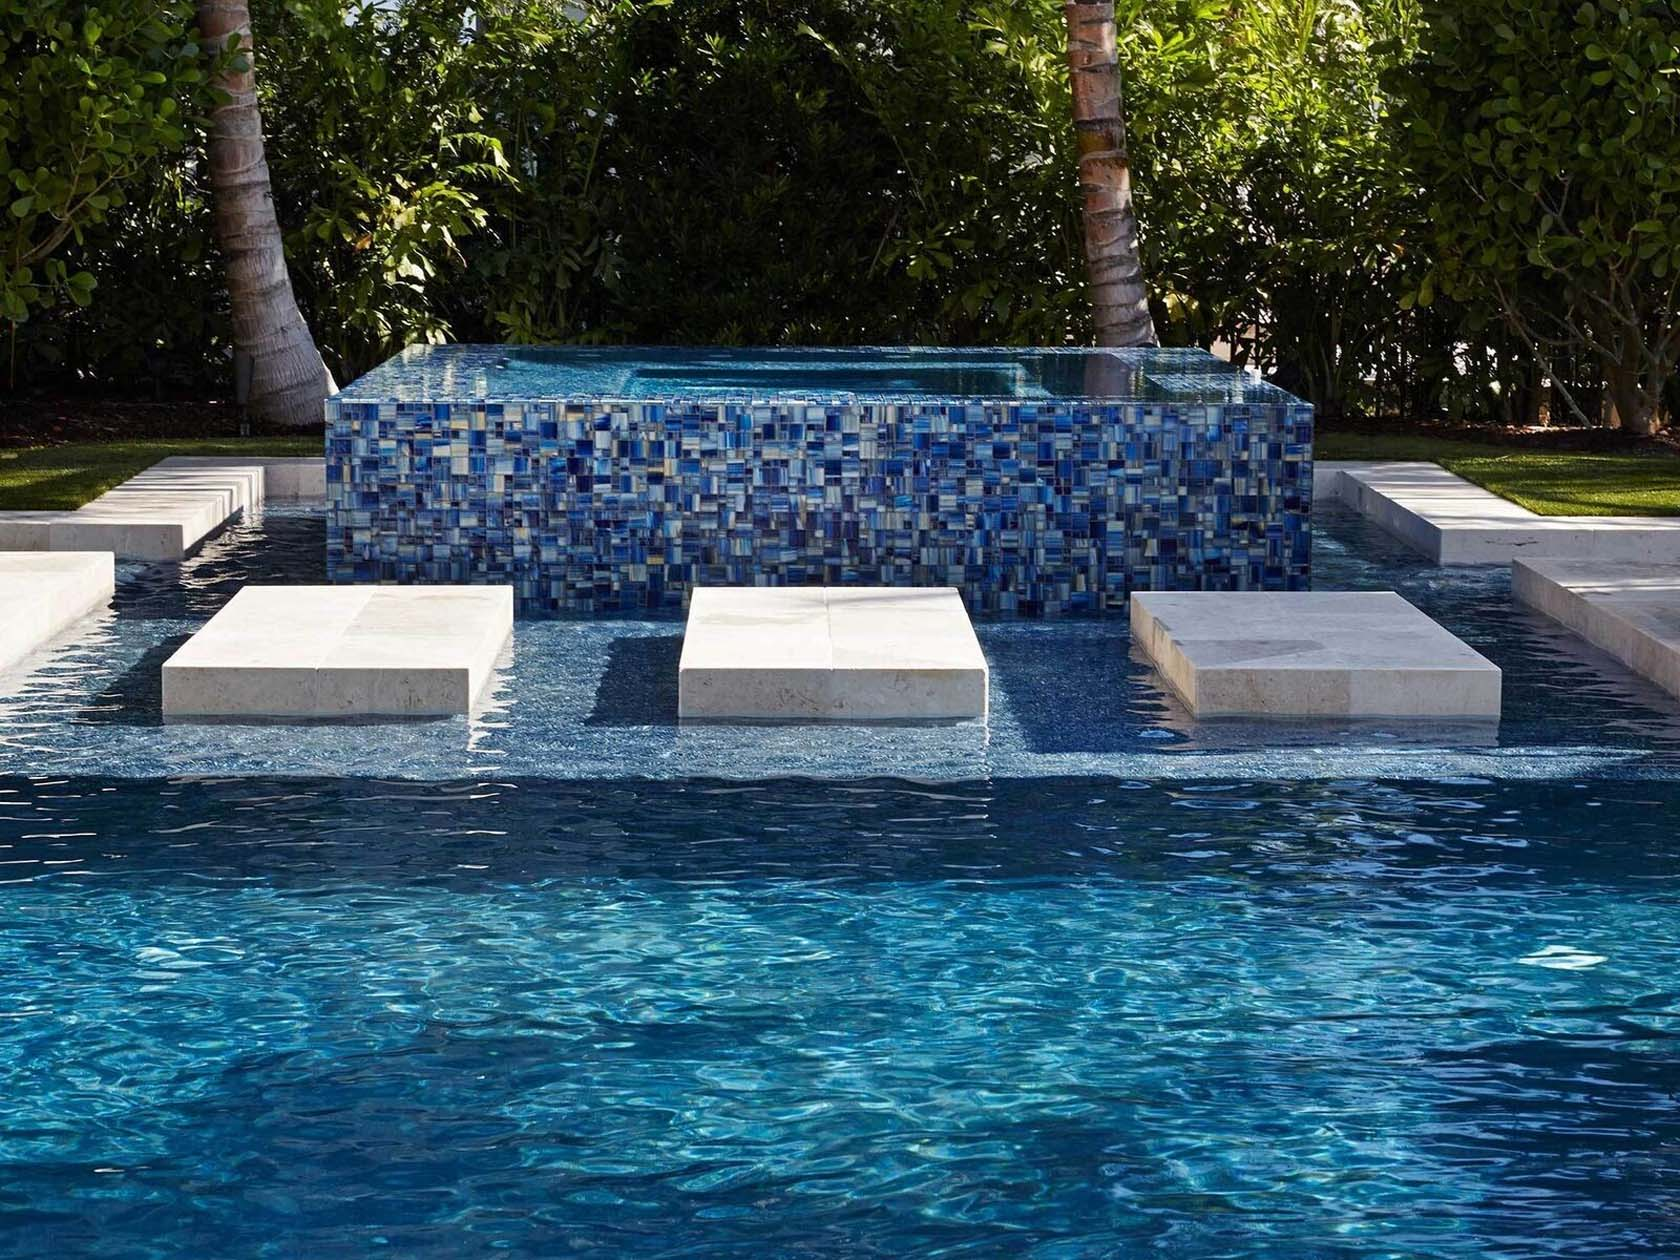 Pool Plaster Vs Pool Tiles